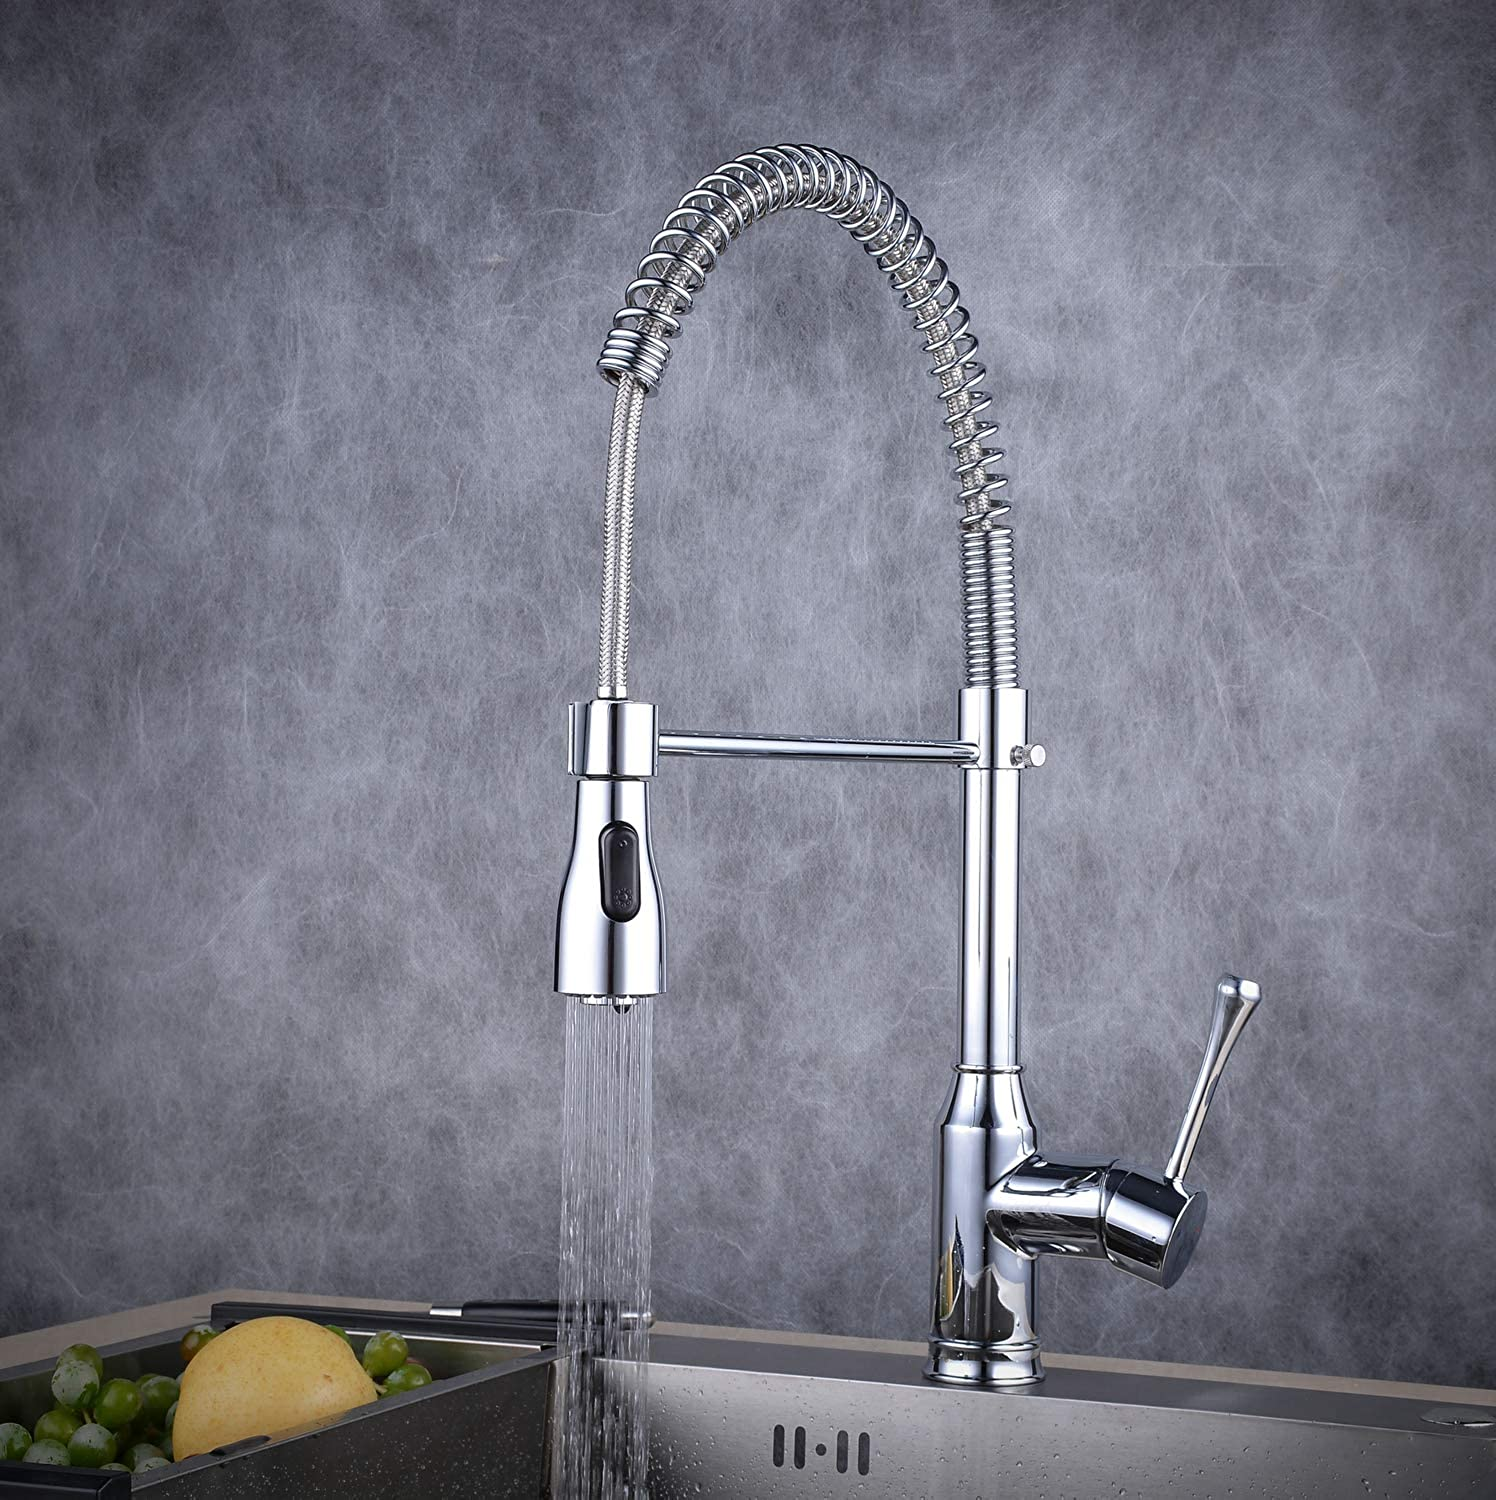 Professional High Arc Kitchen Tap with Swivel Spout,Monobloc Tap with Pull Down Dual Functional Nozzle, Beelee,BL7089